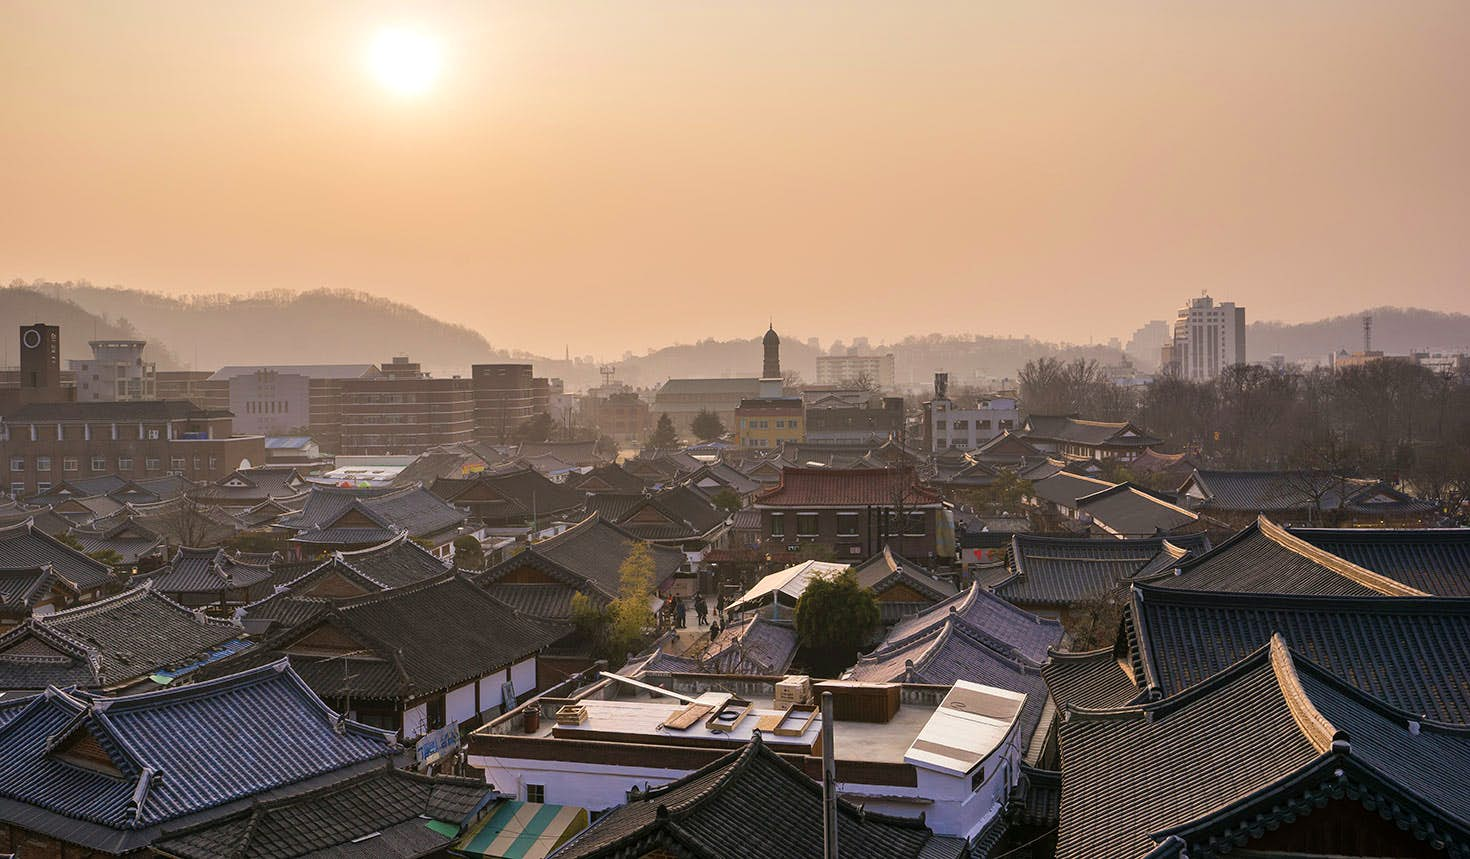 Jeonju Hanok Village is a time capsule of traditional architecture in the centre of the city. Image: Kangheewan / Getty Images